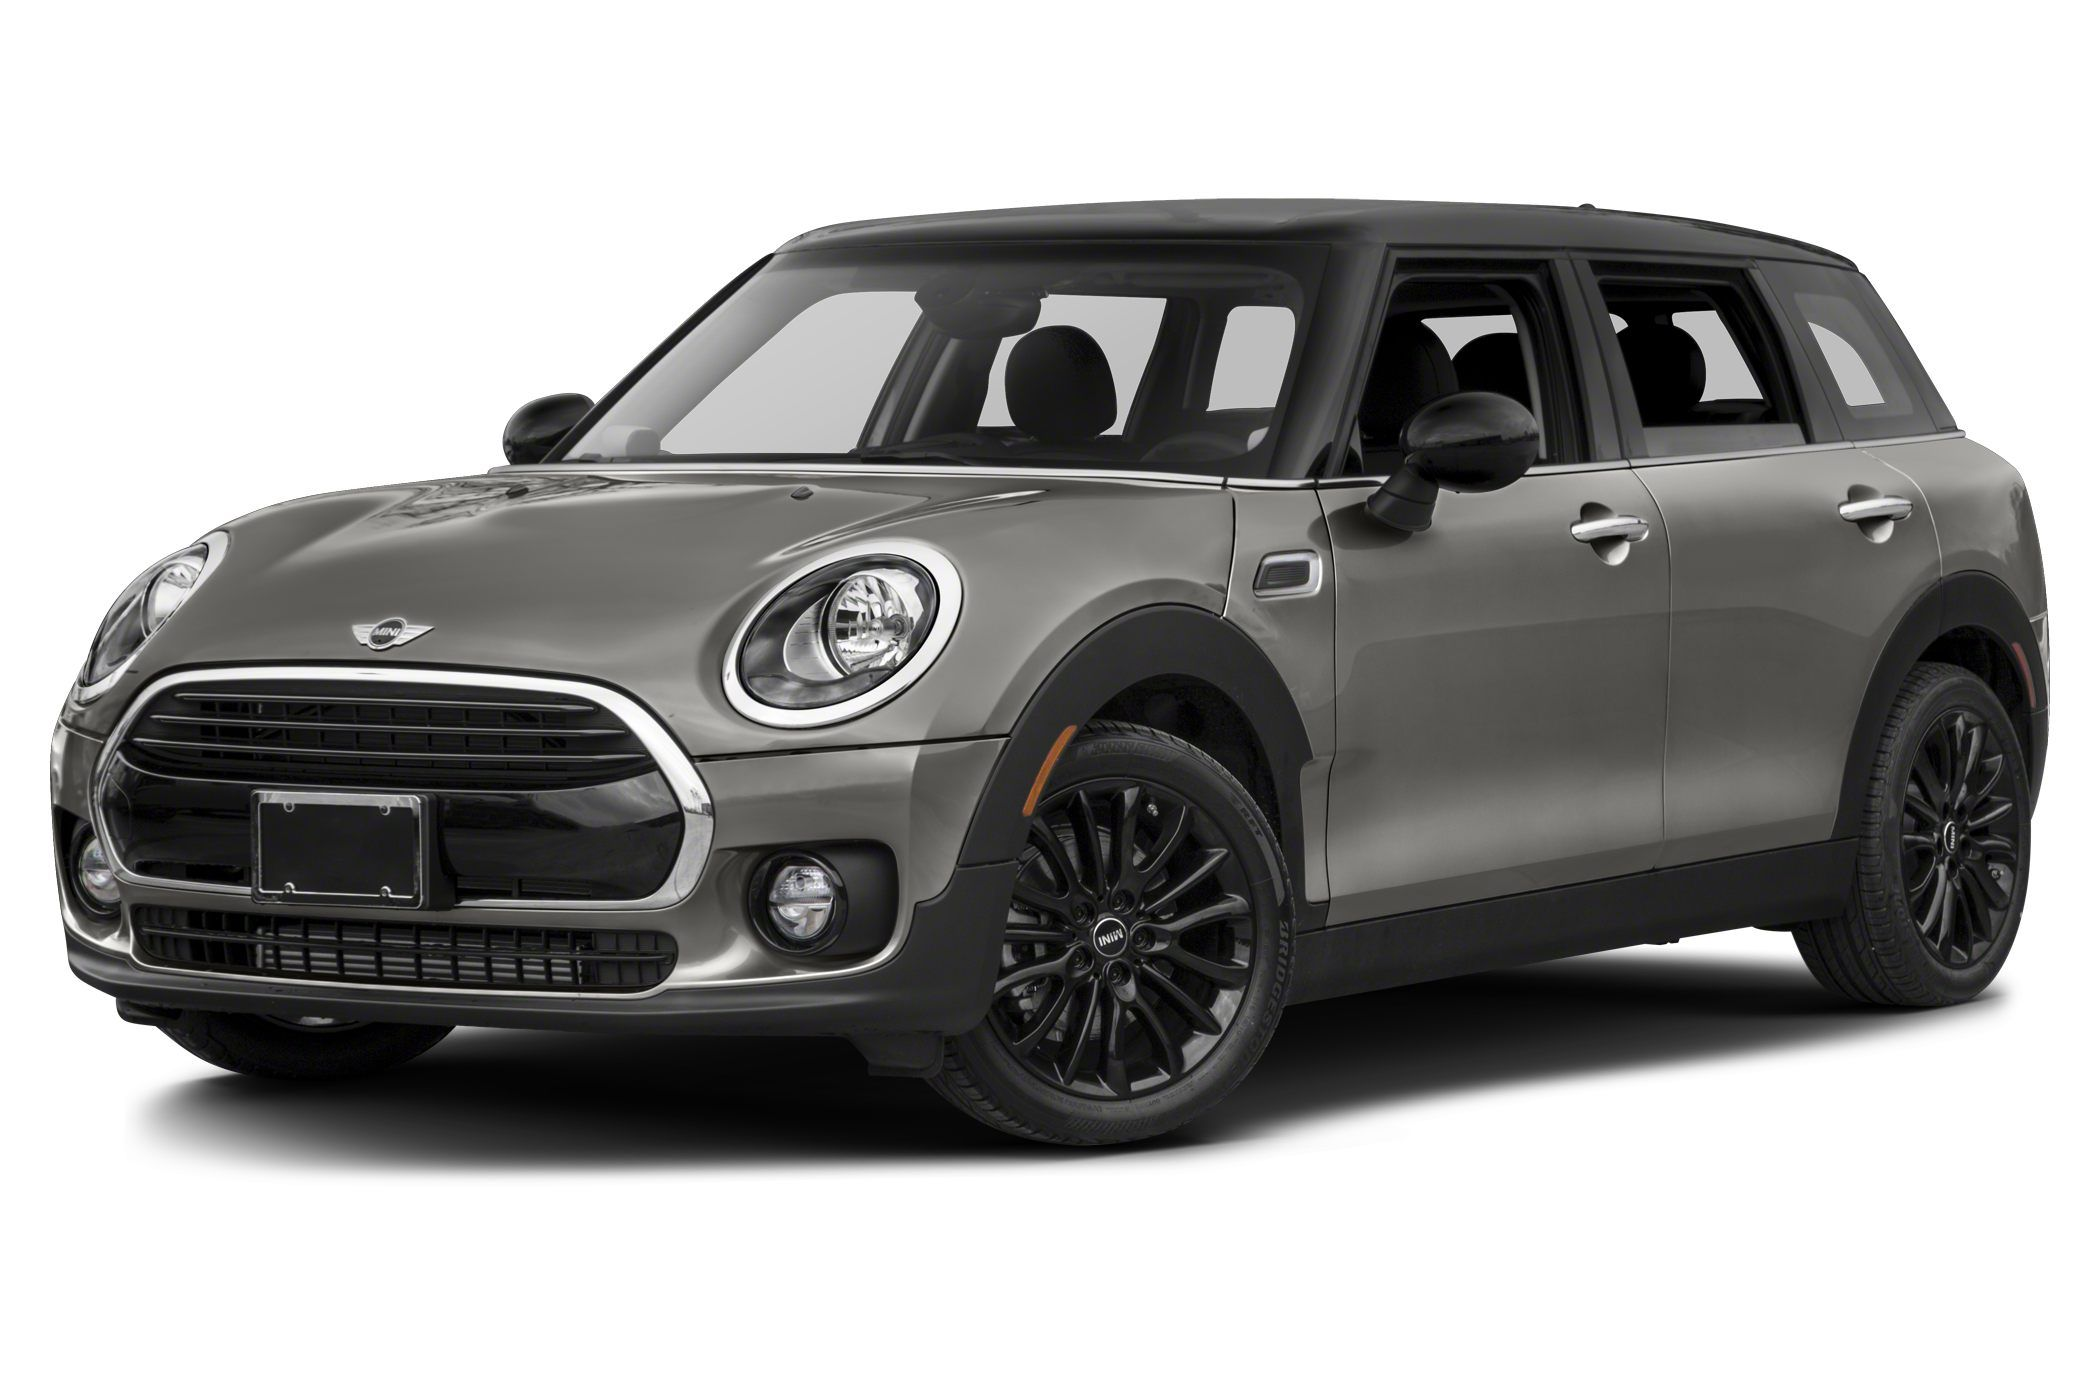 2017 Mini Clubman In Melting Silver Vehicle Mod Inspiration